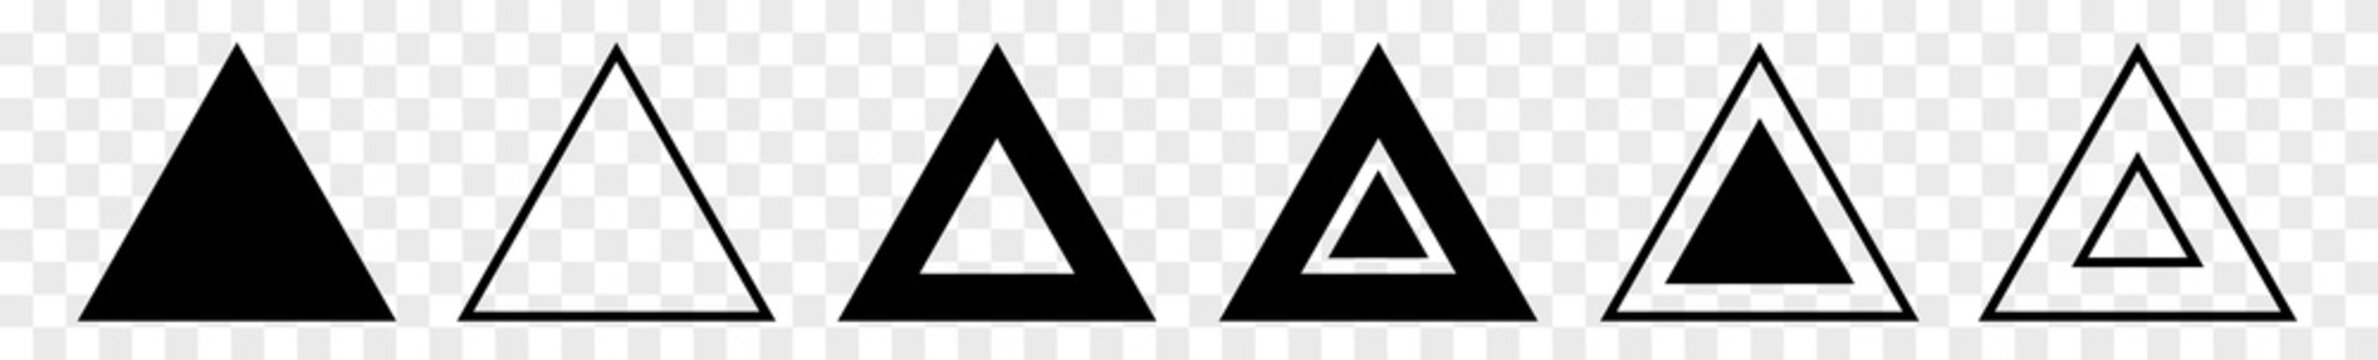 Triangle Icon Black | Label Triangles | Frame Logo | Emblem | Traffic Sign | Road Symbol | Isolated | Transparent Variations